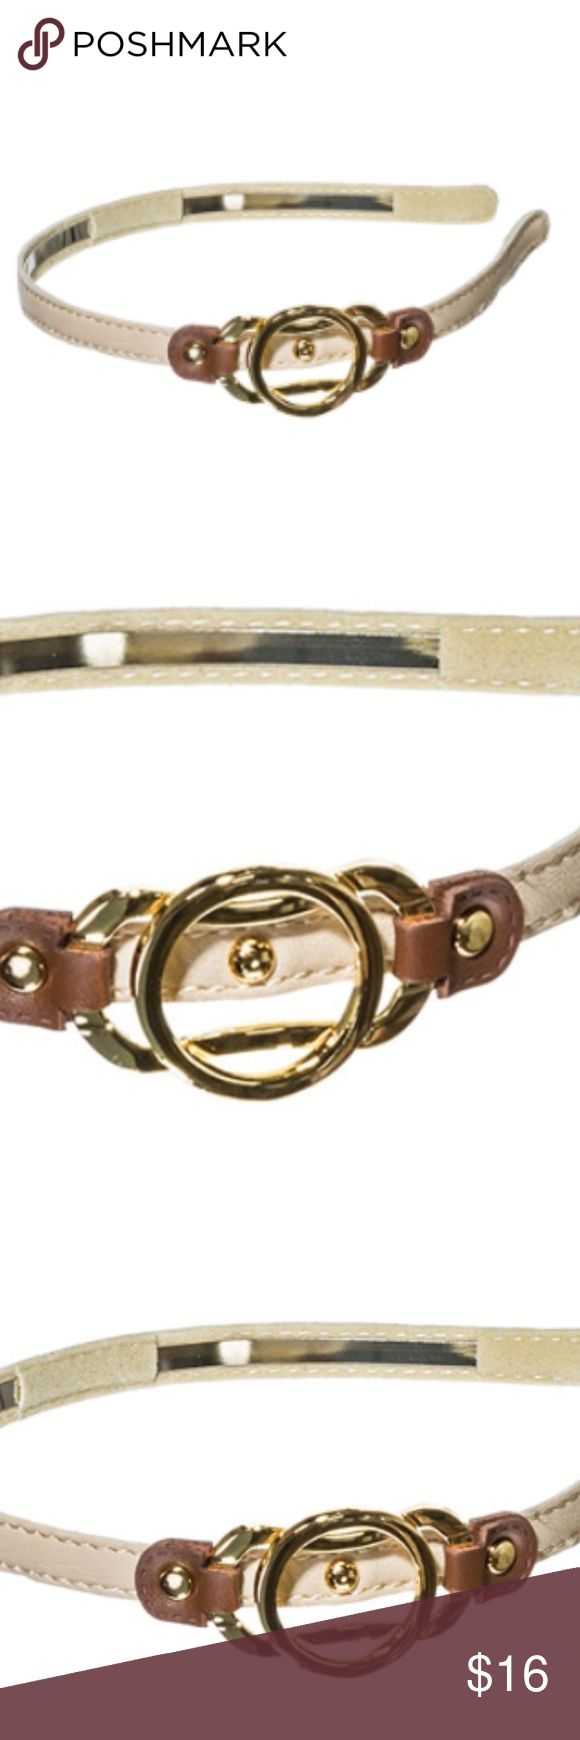 Ivory, Brown, and Gold Headband This high quality eye catching eco-friendly vegan leather .5 inch ivory colored metal headband with off centered brown buckle connecting three gold toned ring design is the perfect compliment to any outfit. Stays snugly in place without the use of hair pulling teeth on the headbands underside. Comfortable and stylish. Science by Nature Accessories Hair Accessories